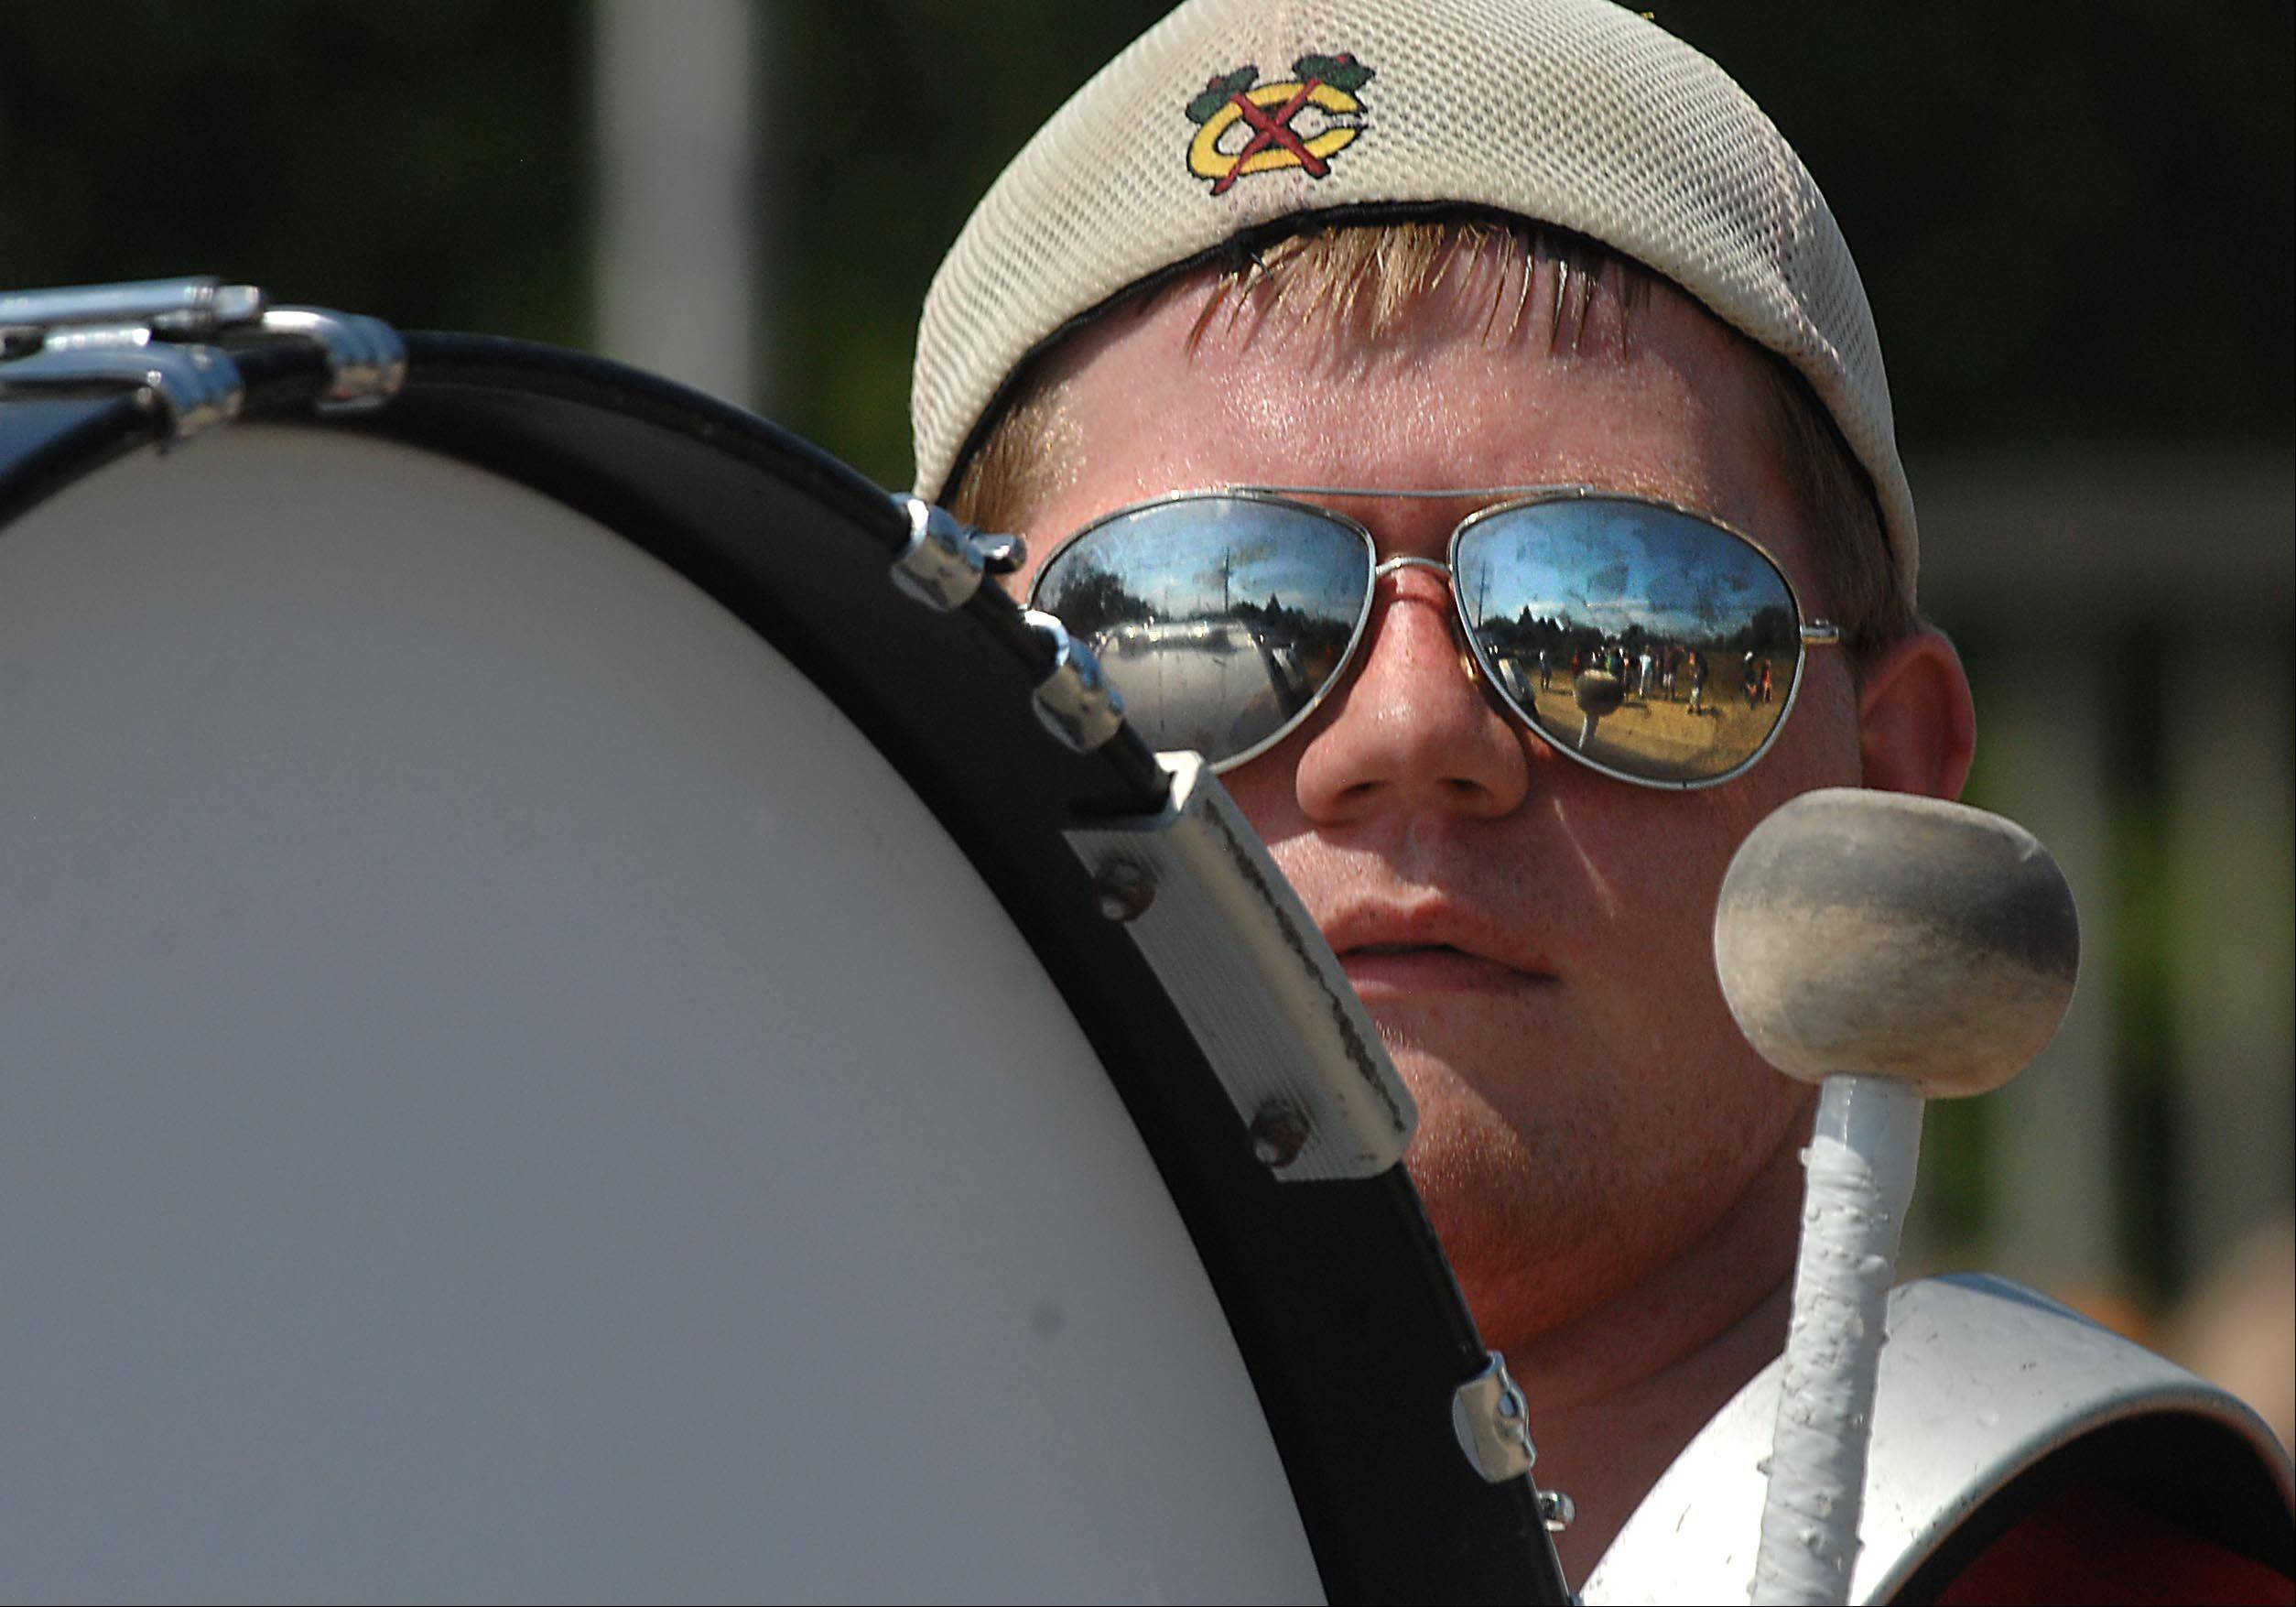 Base drummer Alex Miller can hardly see the crowd around his drum Wednesday at the South Elgin Fourth of July parade. He plays with the South Elgin High School marching band.